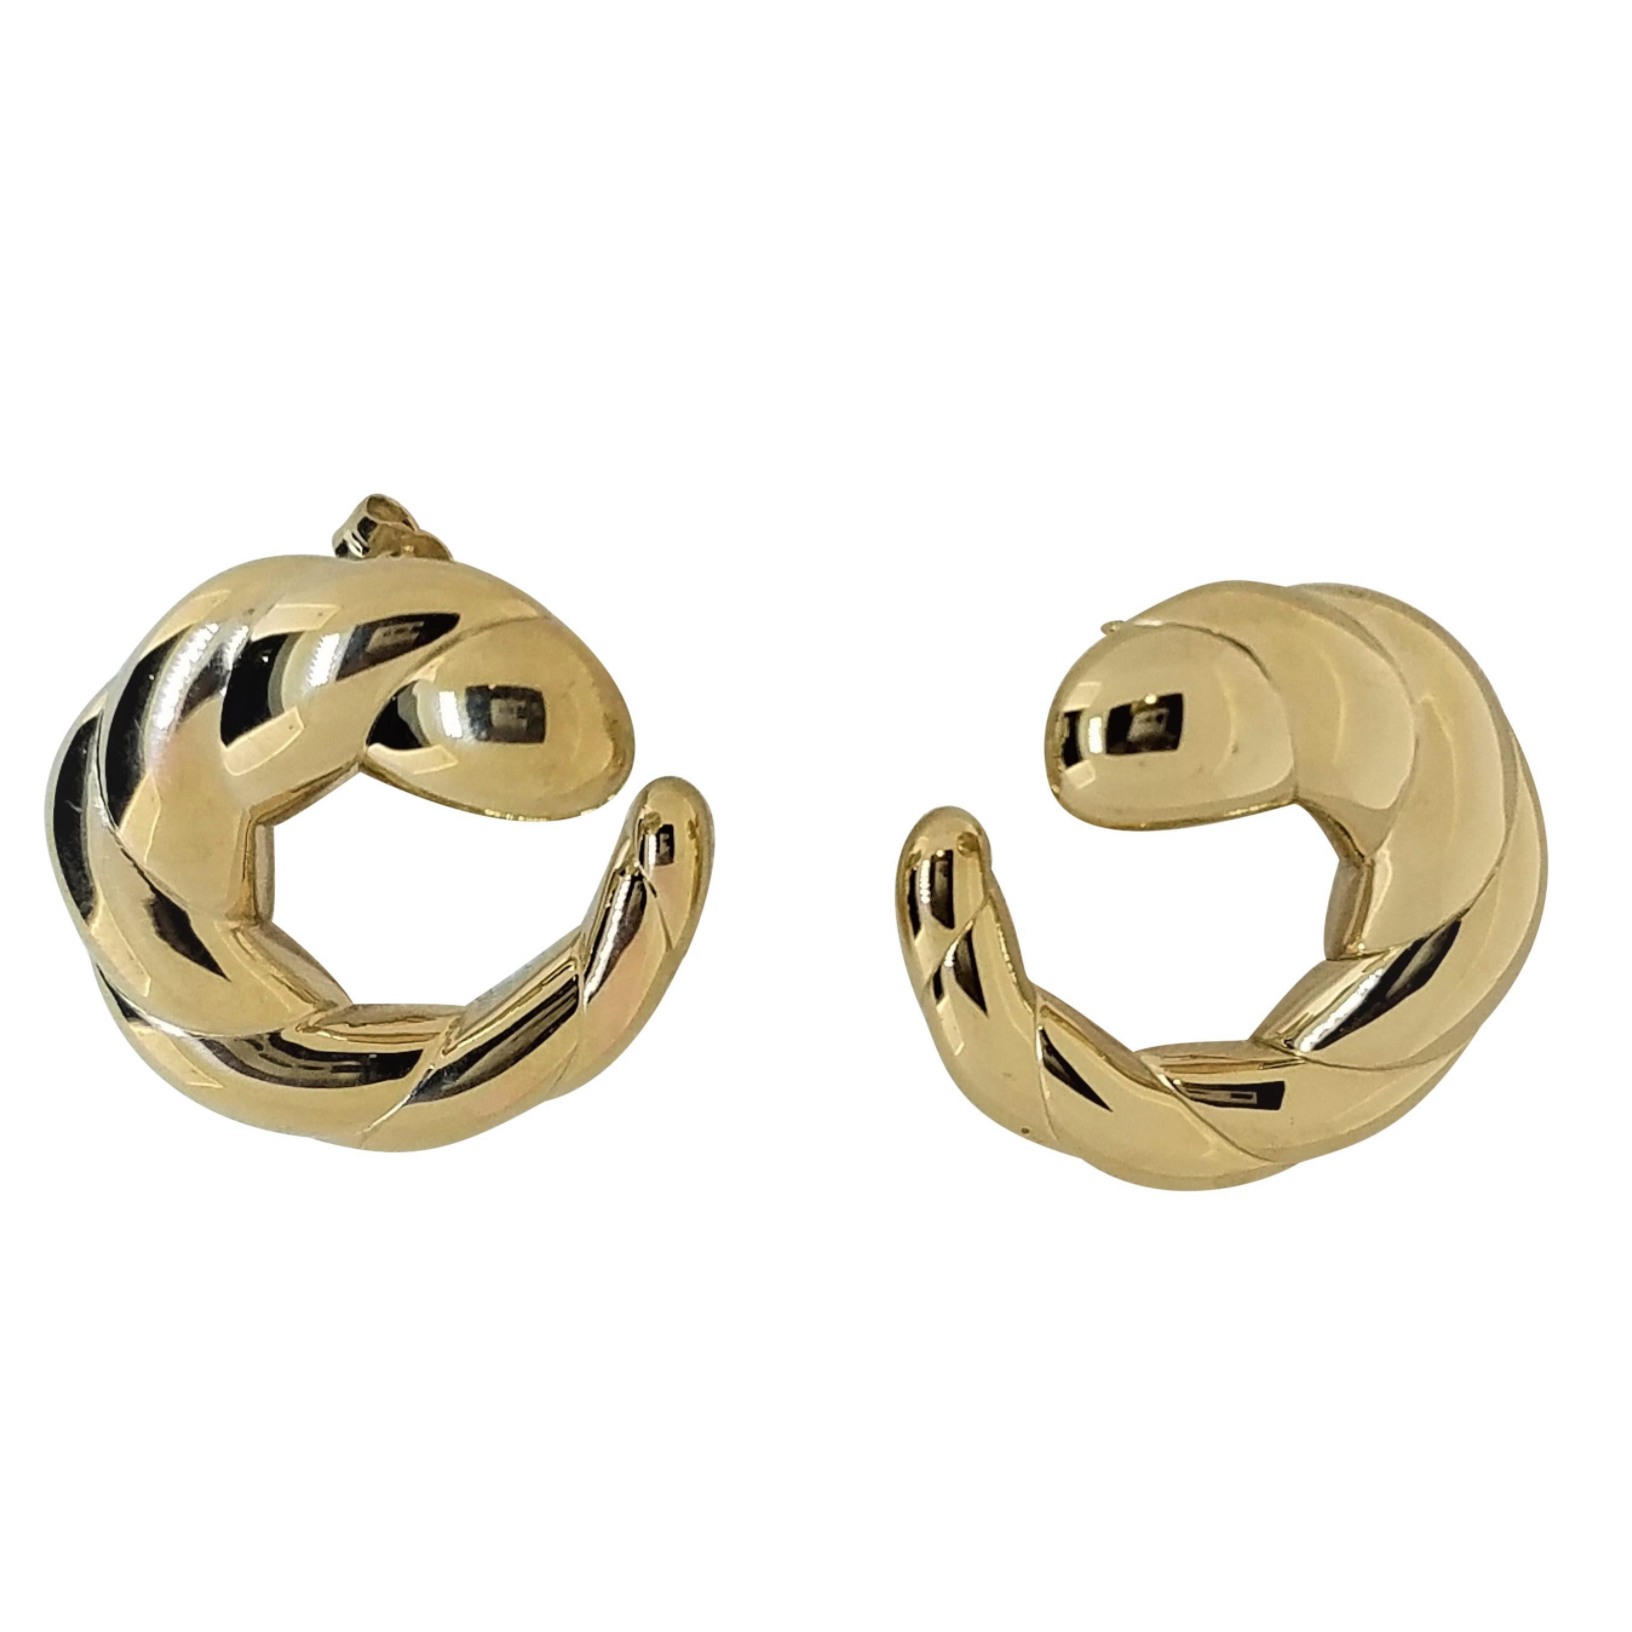 14 Karat Gold Circular Swirl Shaped Earrings with Brightly Polished Finish